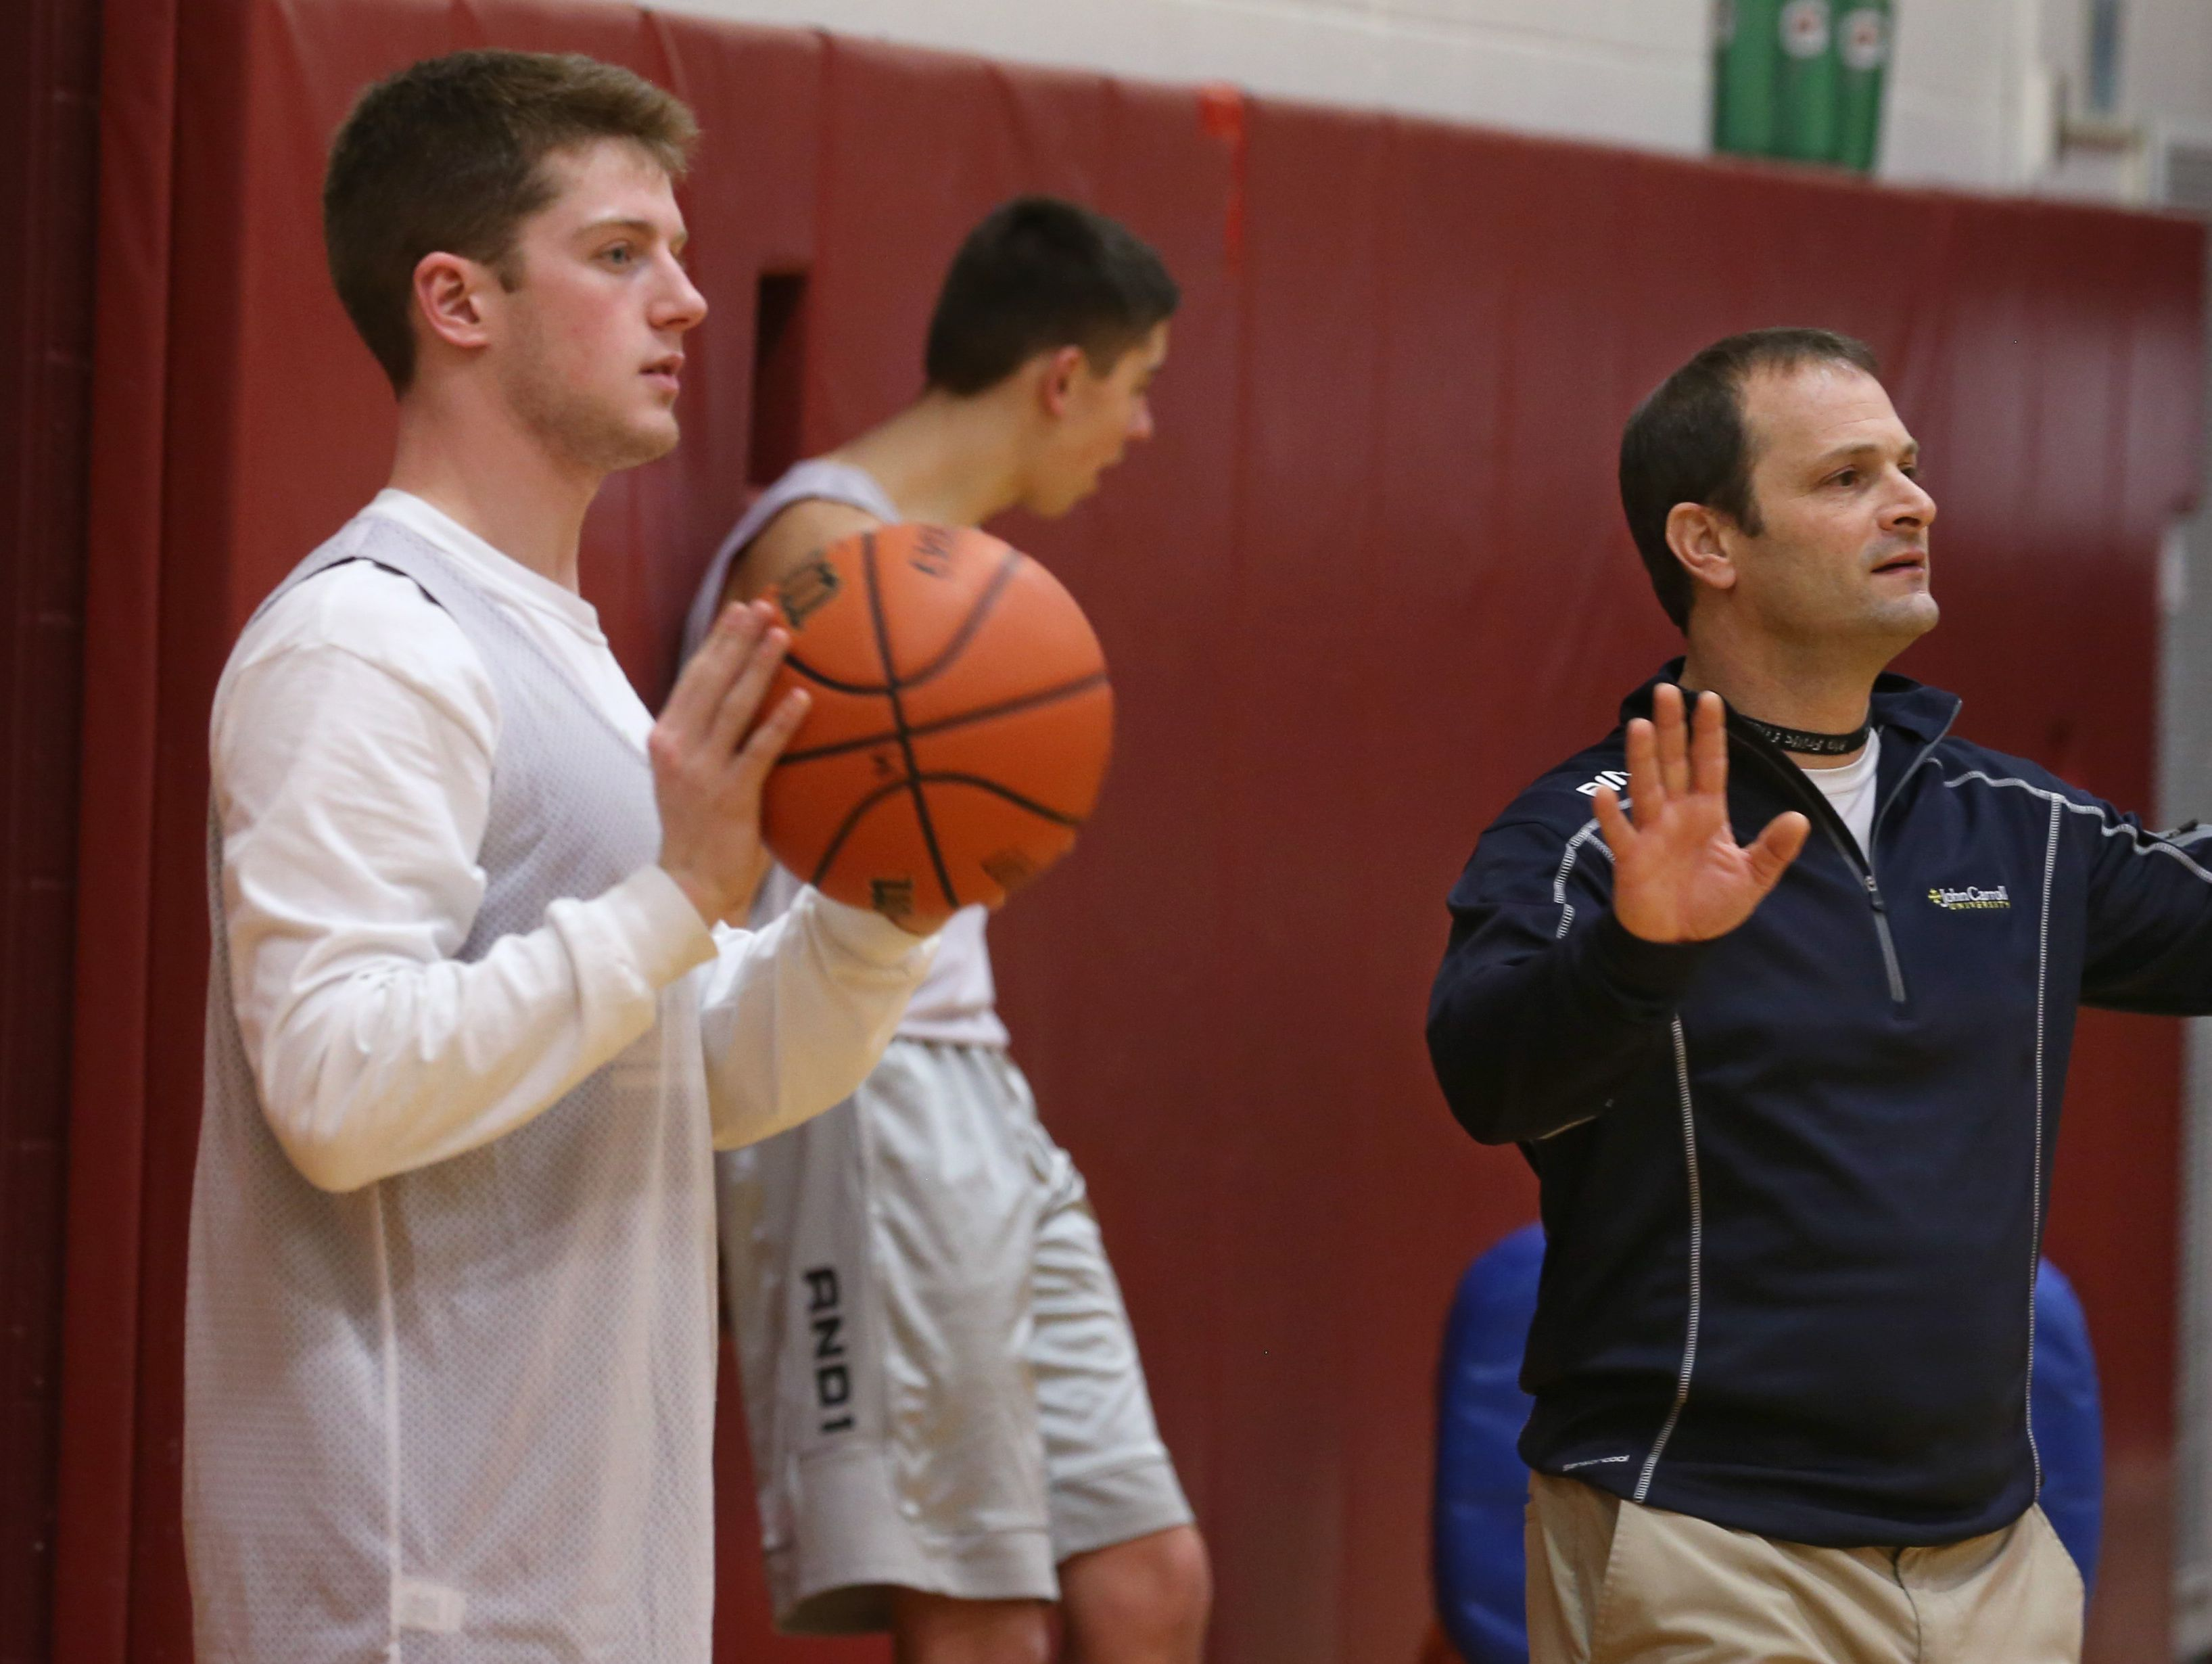 Jeff Amoroso, Pittsford Mendon boys varsity basketball assistant coach, works with the players during practice Tuesday, Jan. 19, 2016 at the high school.